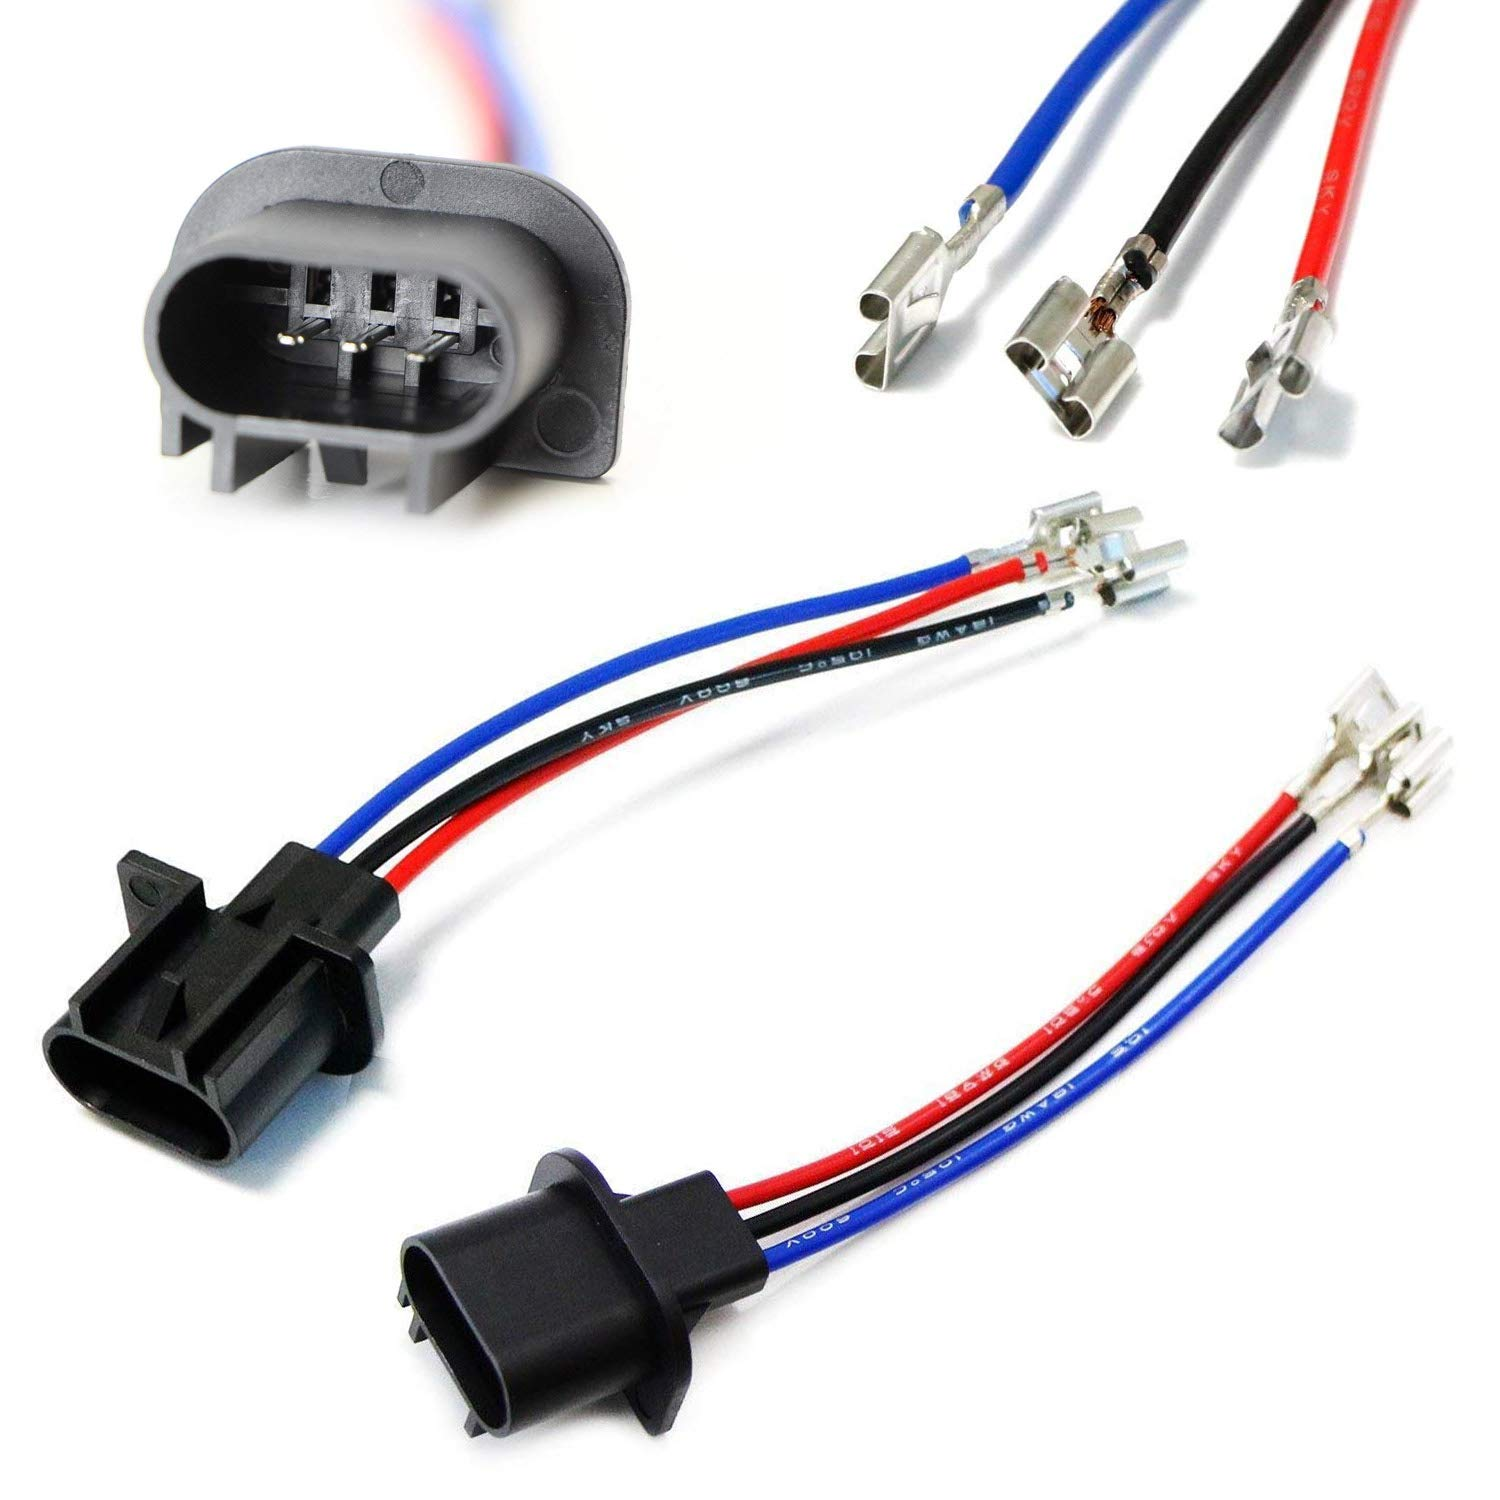 Amazon.com: iJDMTOY (2) H13/9008 to 9007/9004 or 9003/H4 Polarity  Adjustable Conversion Adapter Wiring Kit For Headlight Conversion Retrofit:  Automotive